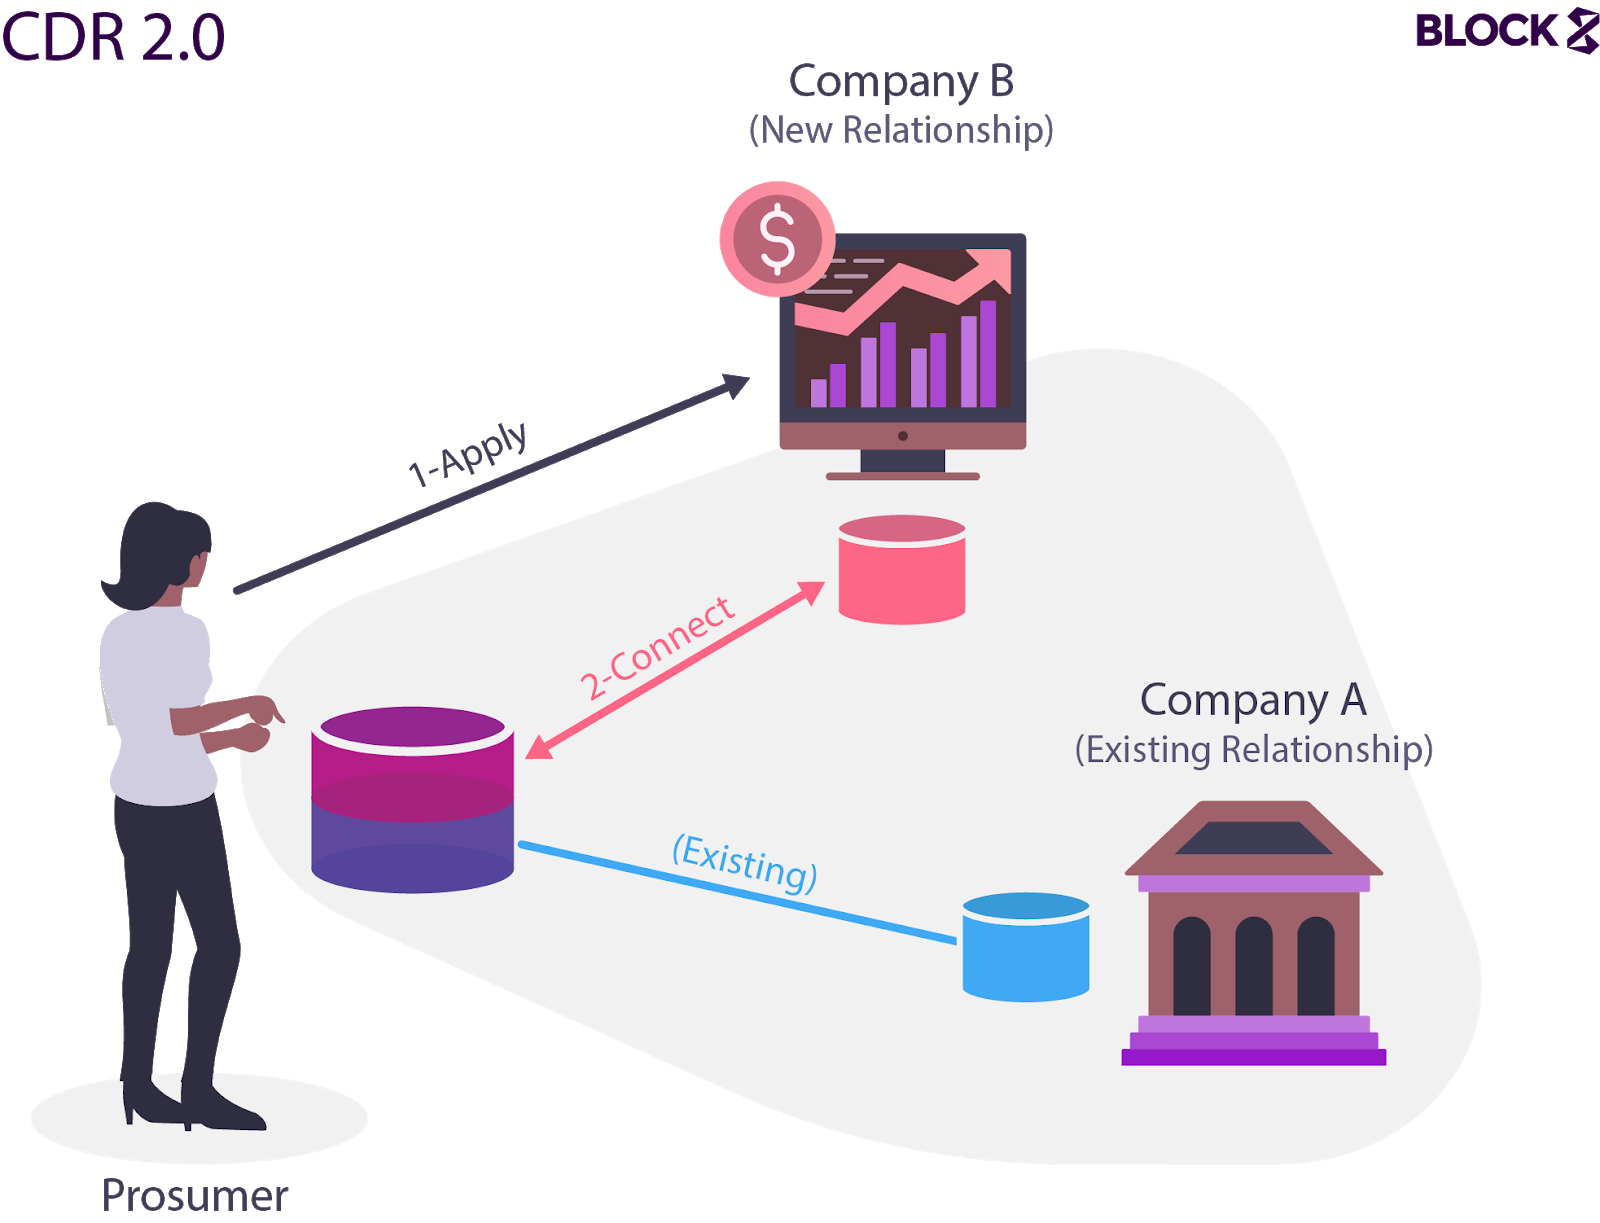 Conceptual model of a future implementation of the Consumer Data Right